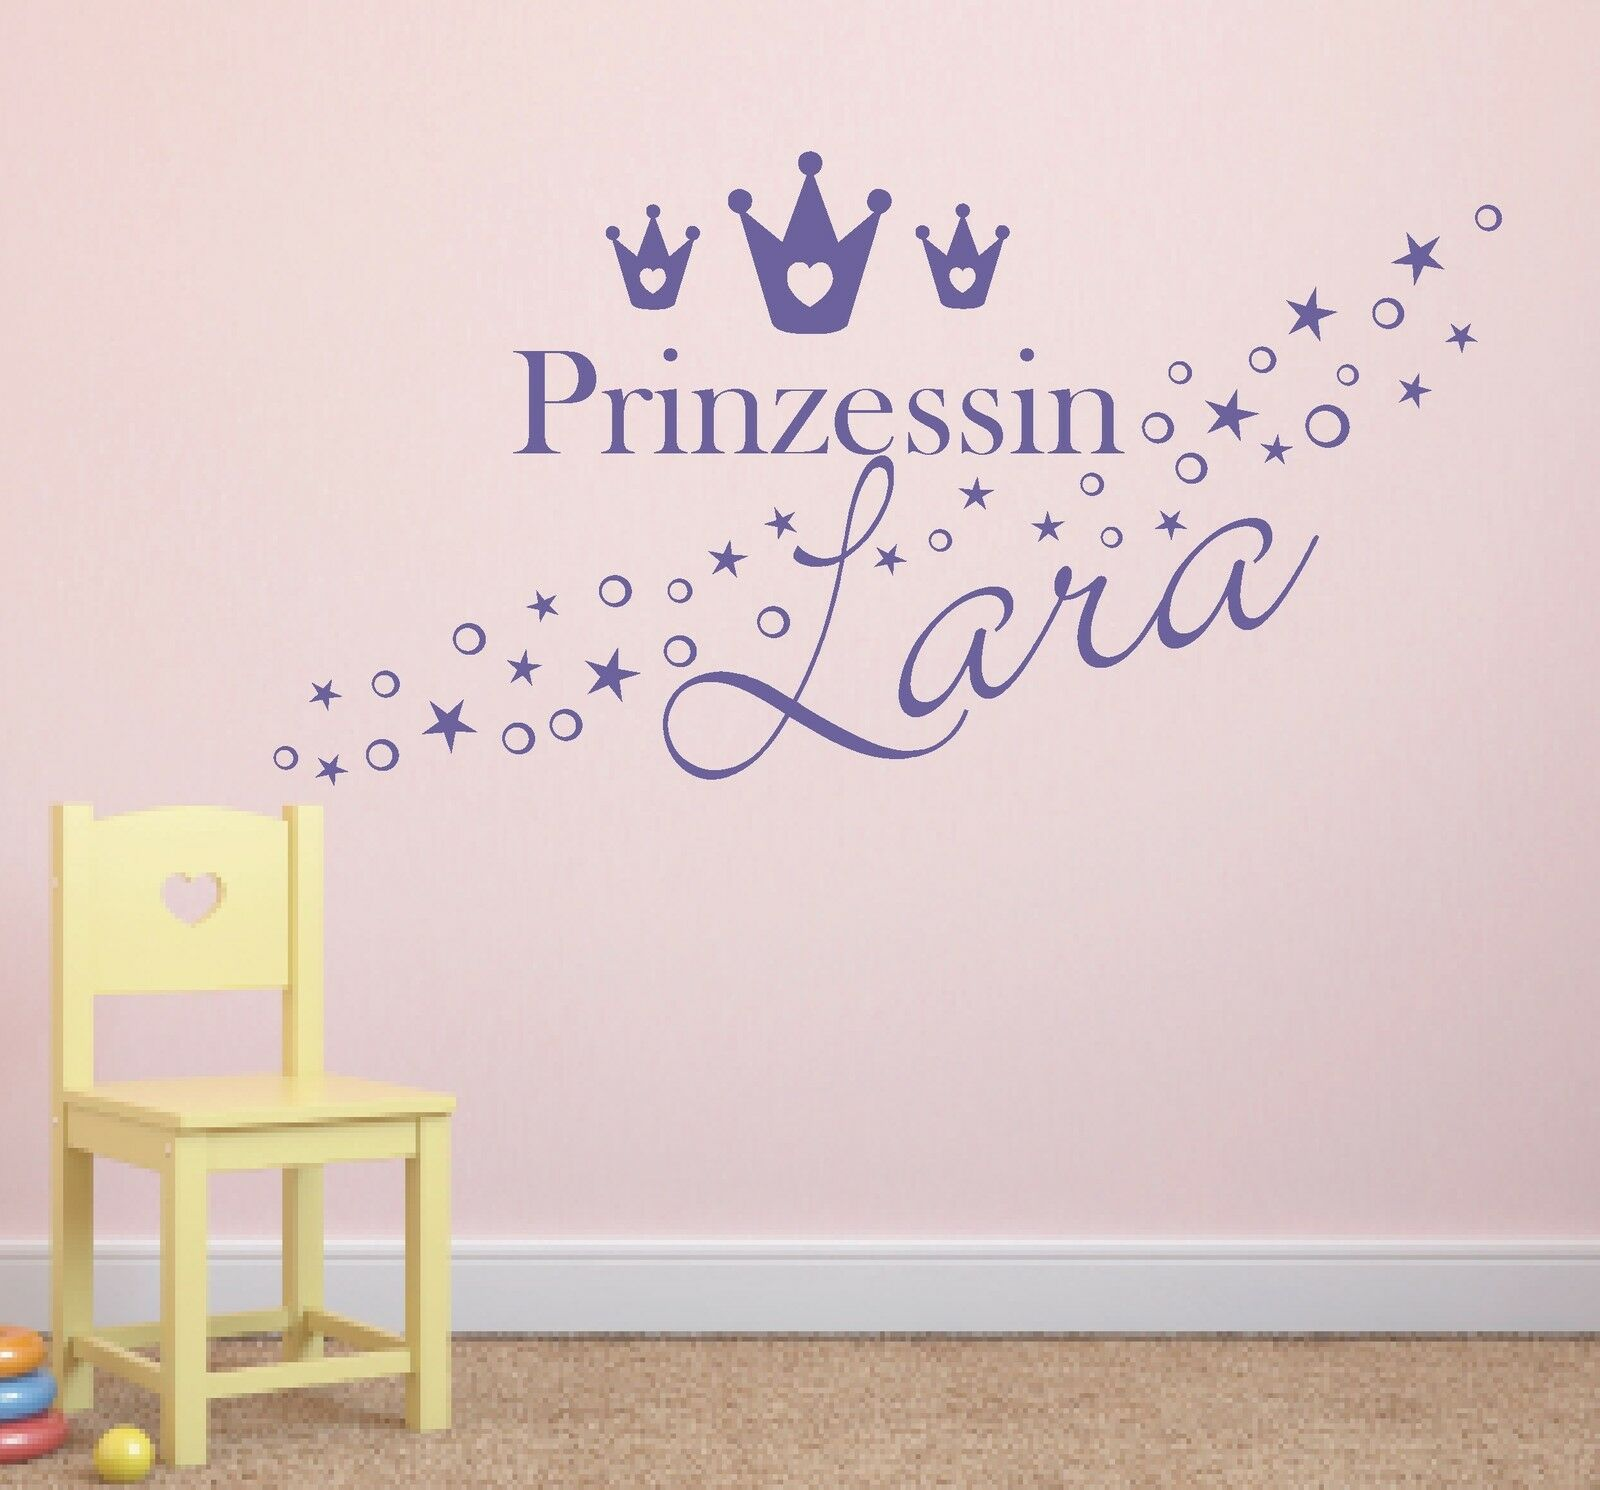 wandtattoo prinzessin name sterne punkte kinderzimmer 2 farbig chf picclick ch. Black Bedroom Furniture Sets. Home Design Ideas